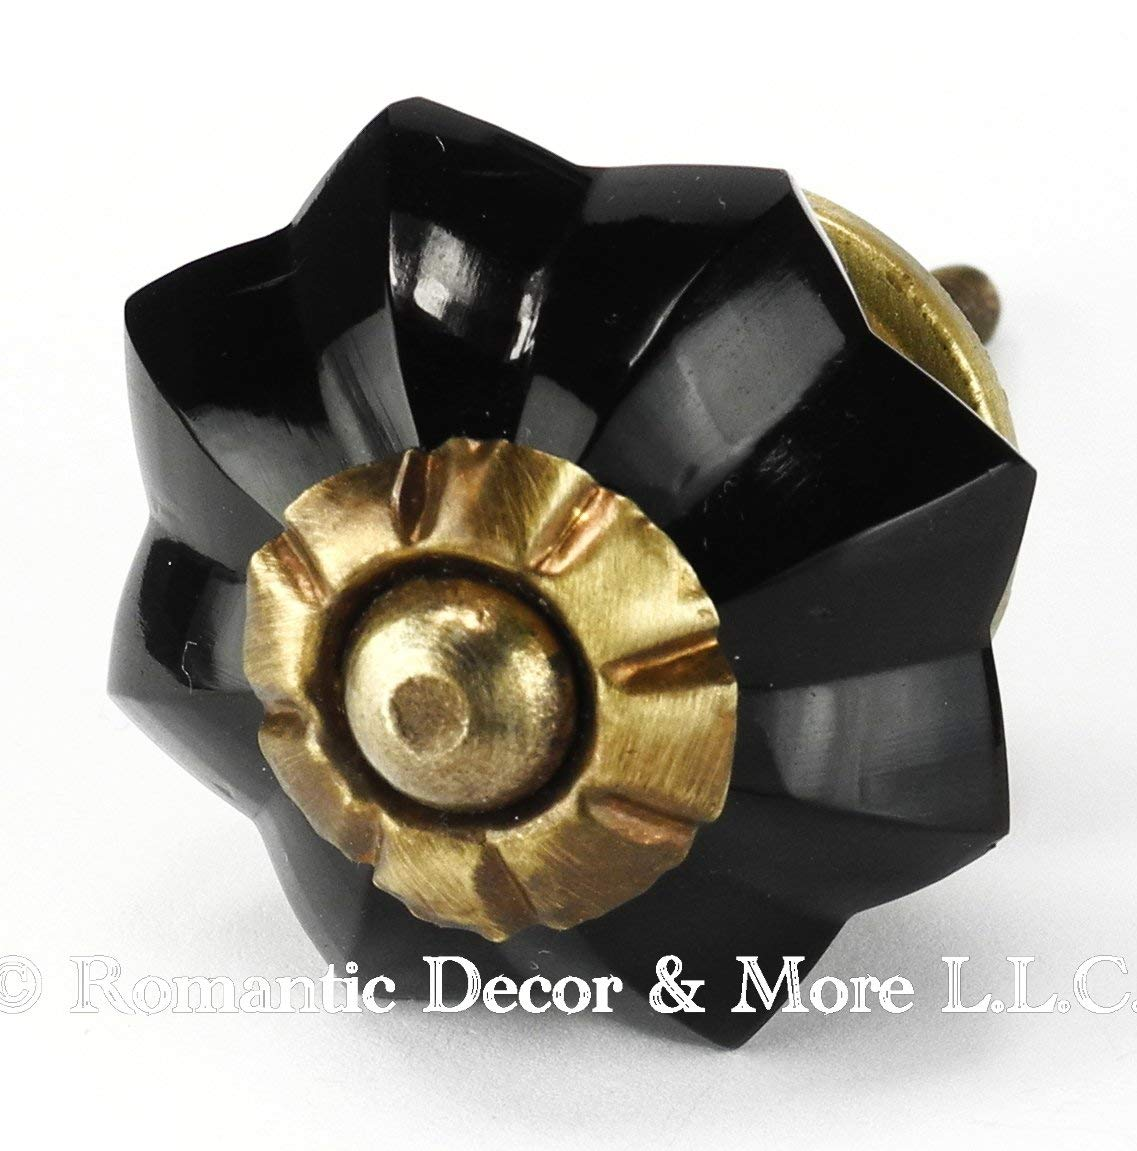 Black Melon Glass Cabinet Knobs, Drawer Pulls & Handles Set/4pc ~ K179RL Classic Glass Knobs with Antique Brass Hardware for Cabinets, Dressers, Kitchen Cabinets and Cupboards